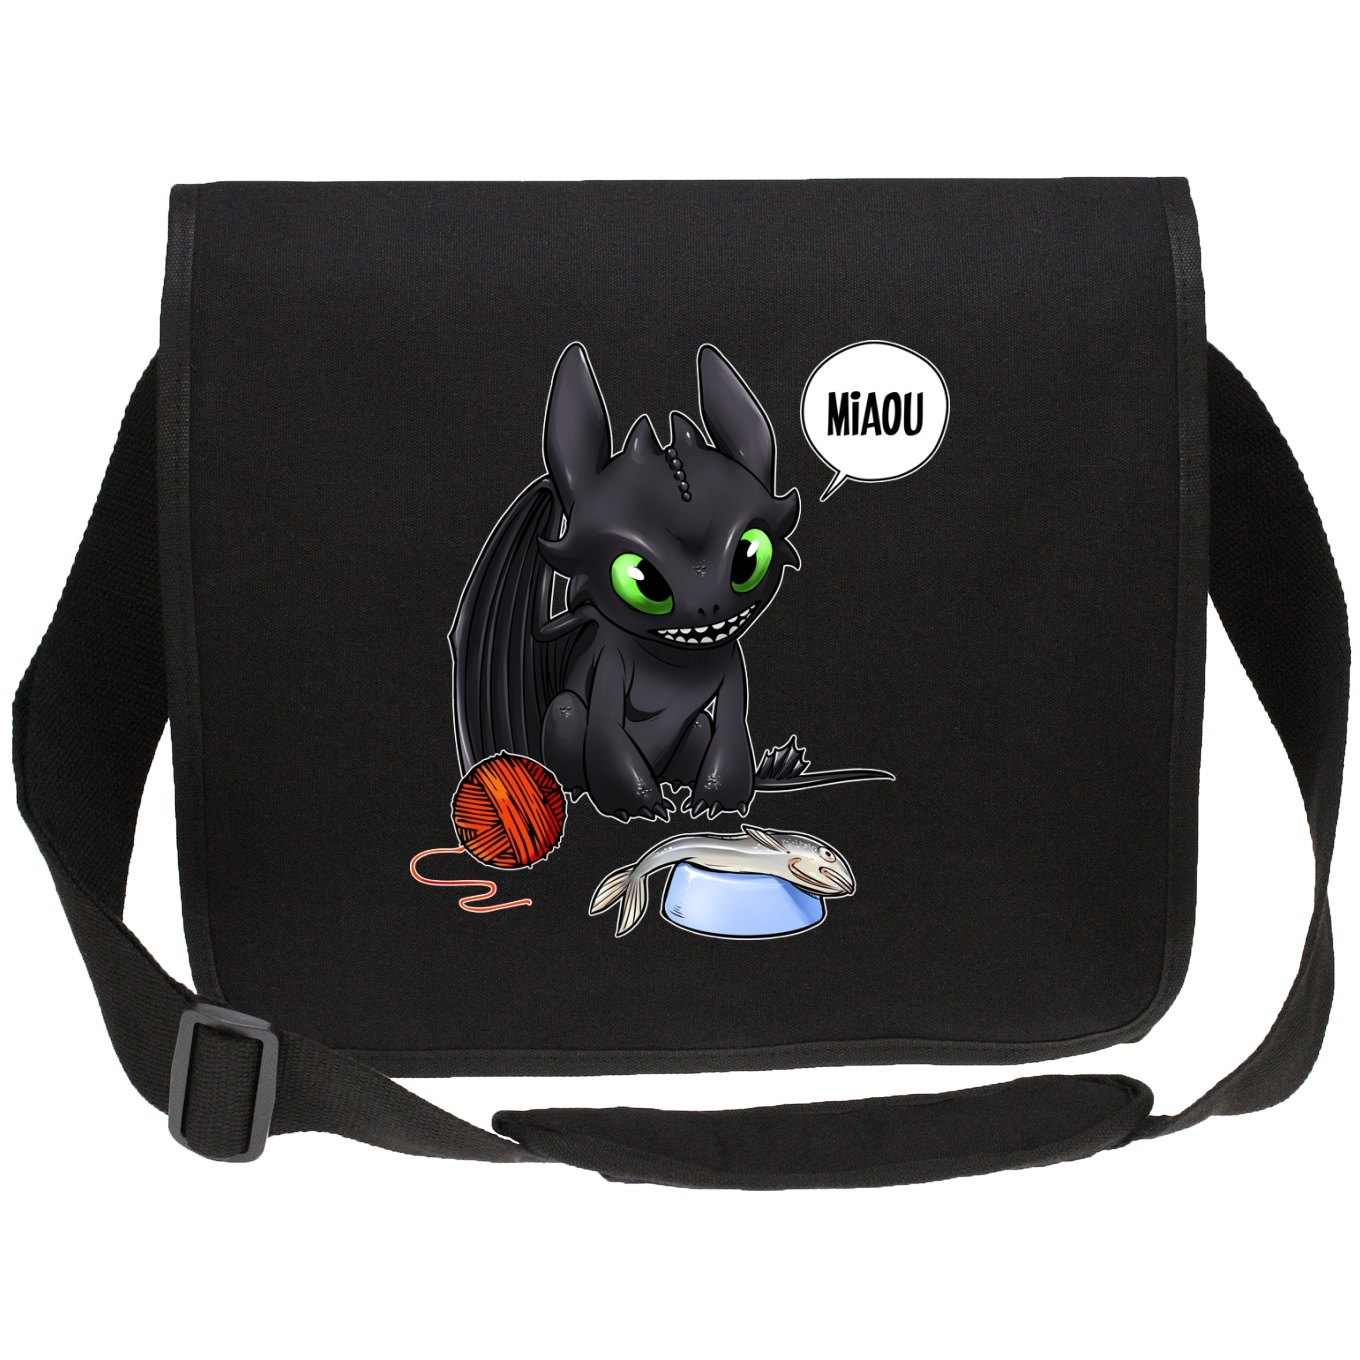 Canvas Messenger Bags Movies Parodies